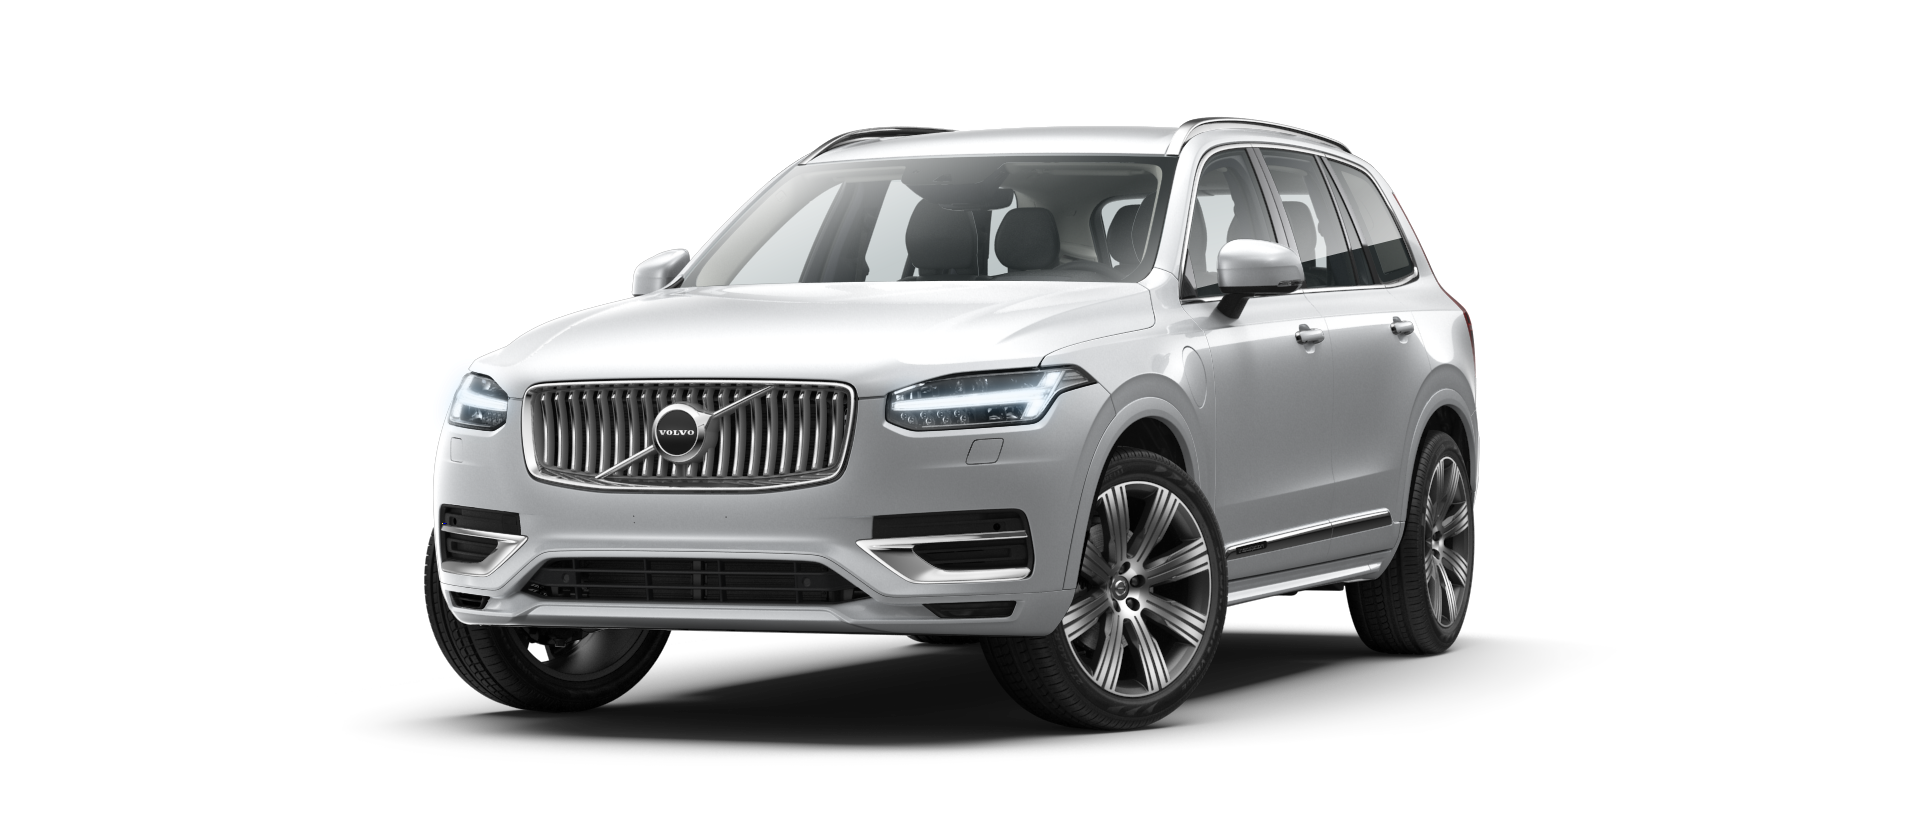 front side view of XC90 plug-in hybrid